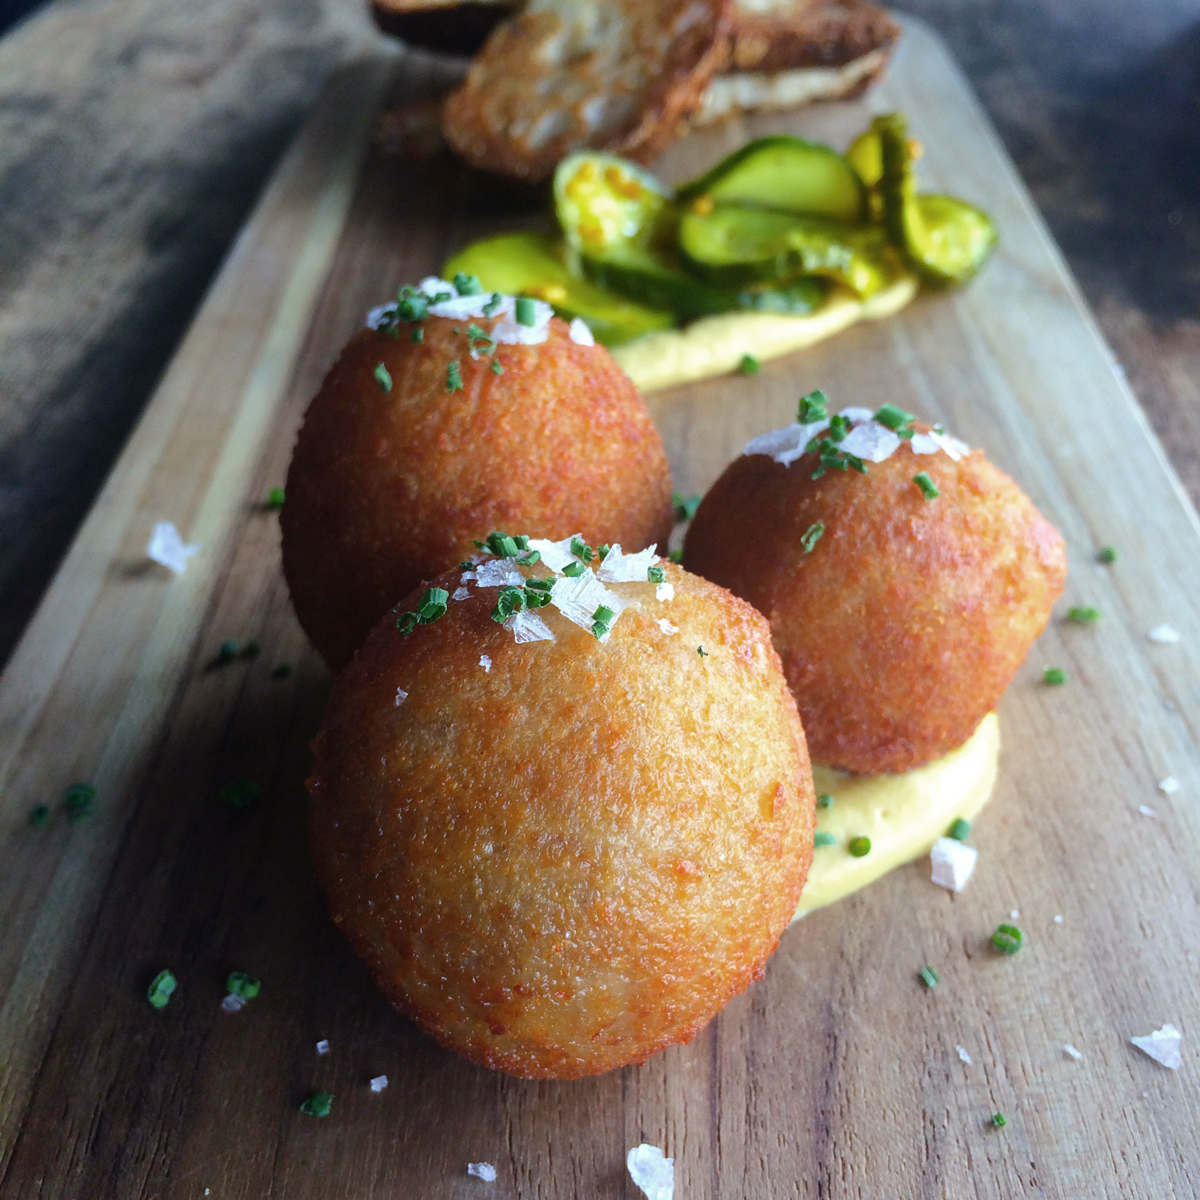 The Local Coral Gables restaurant fritters